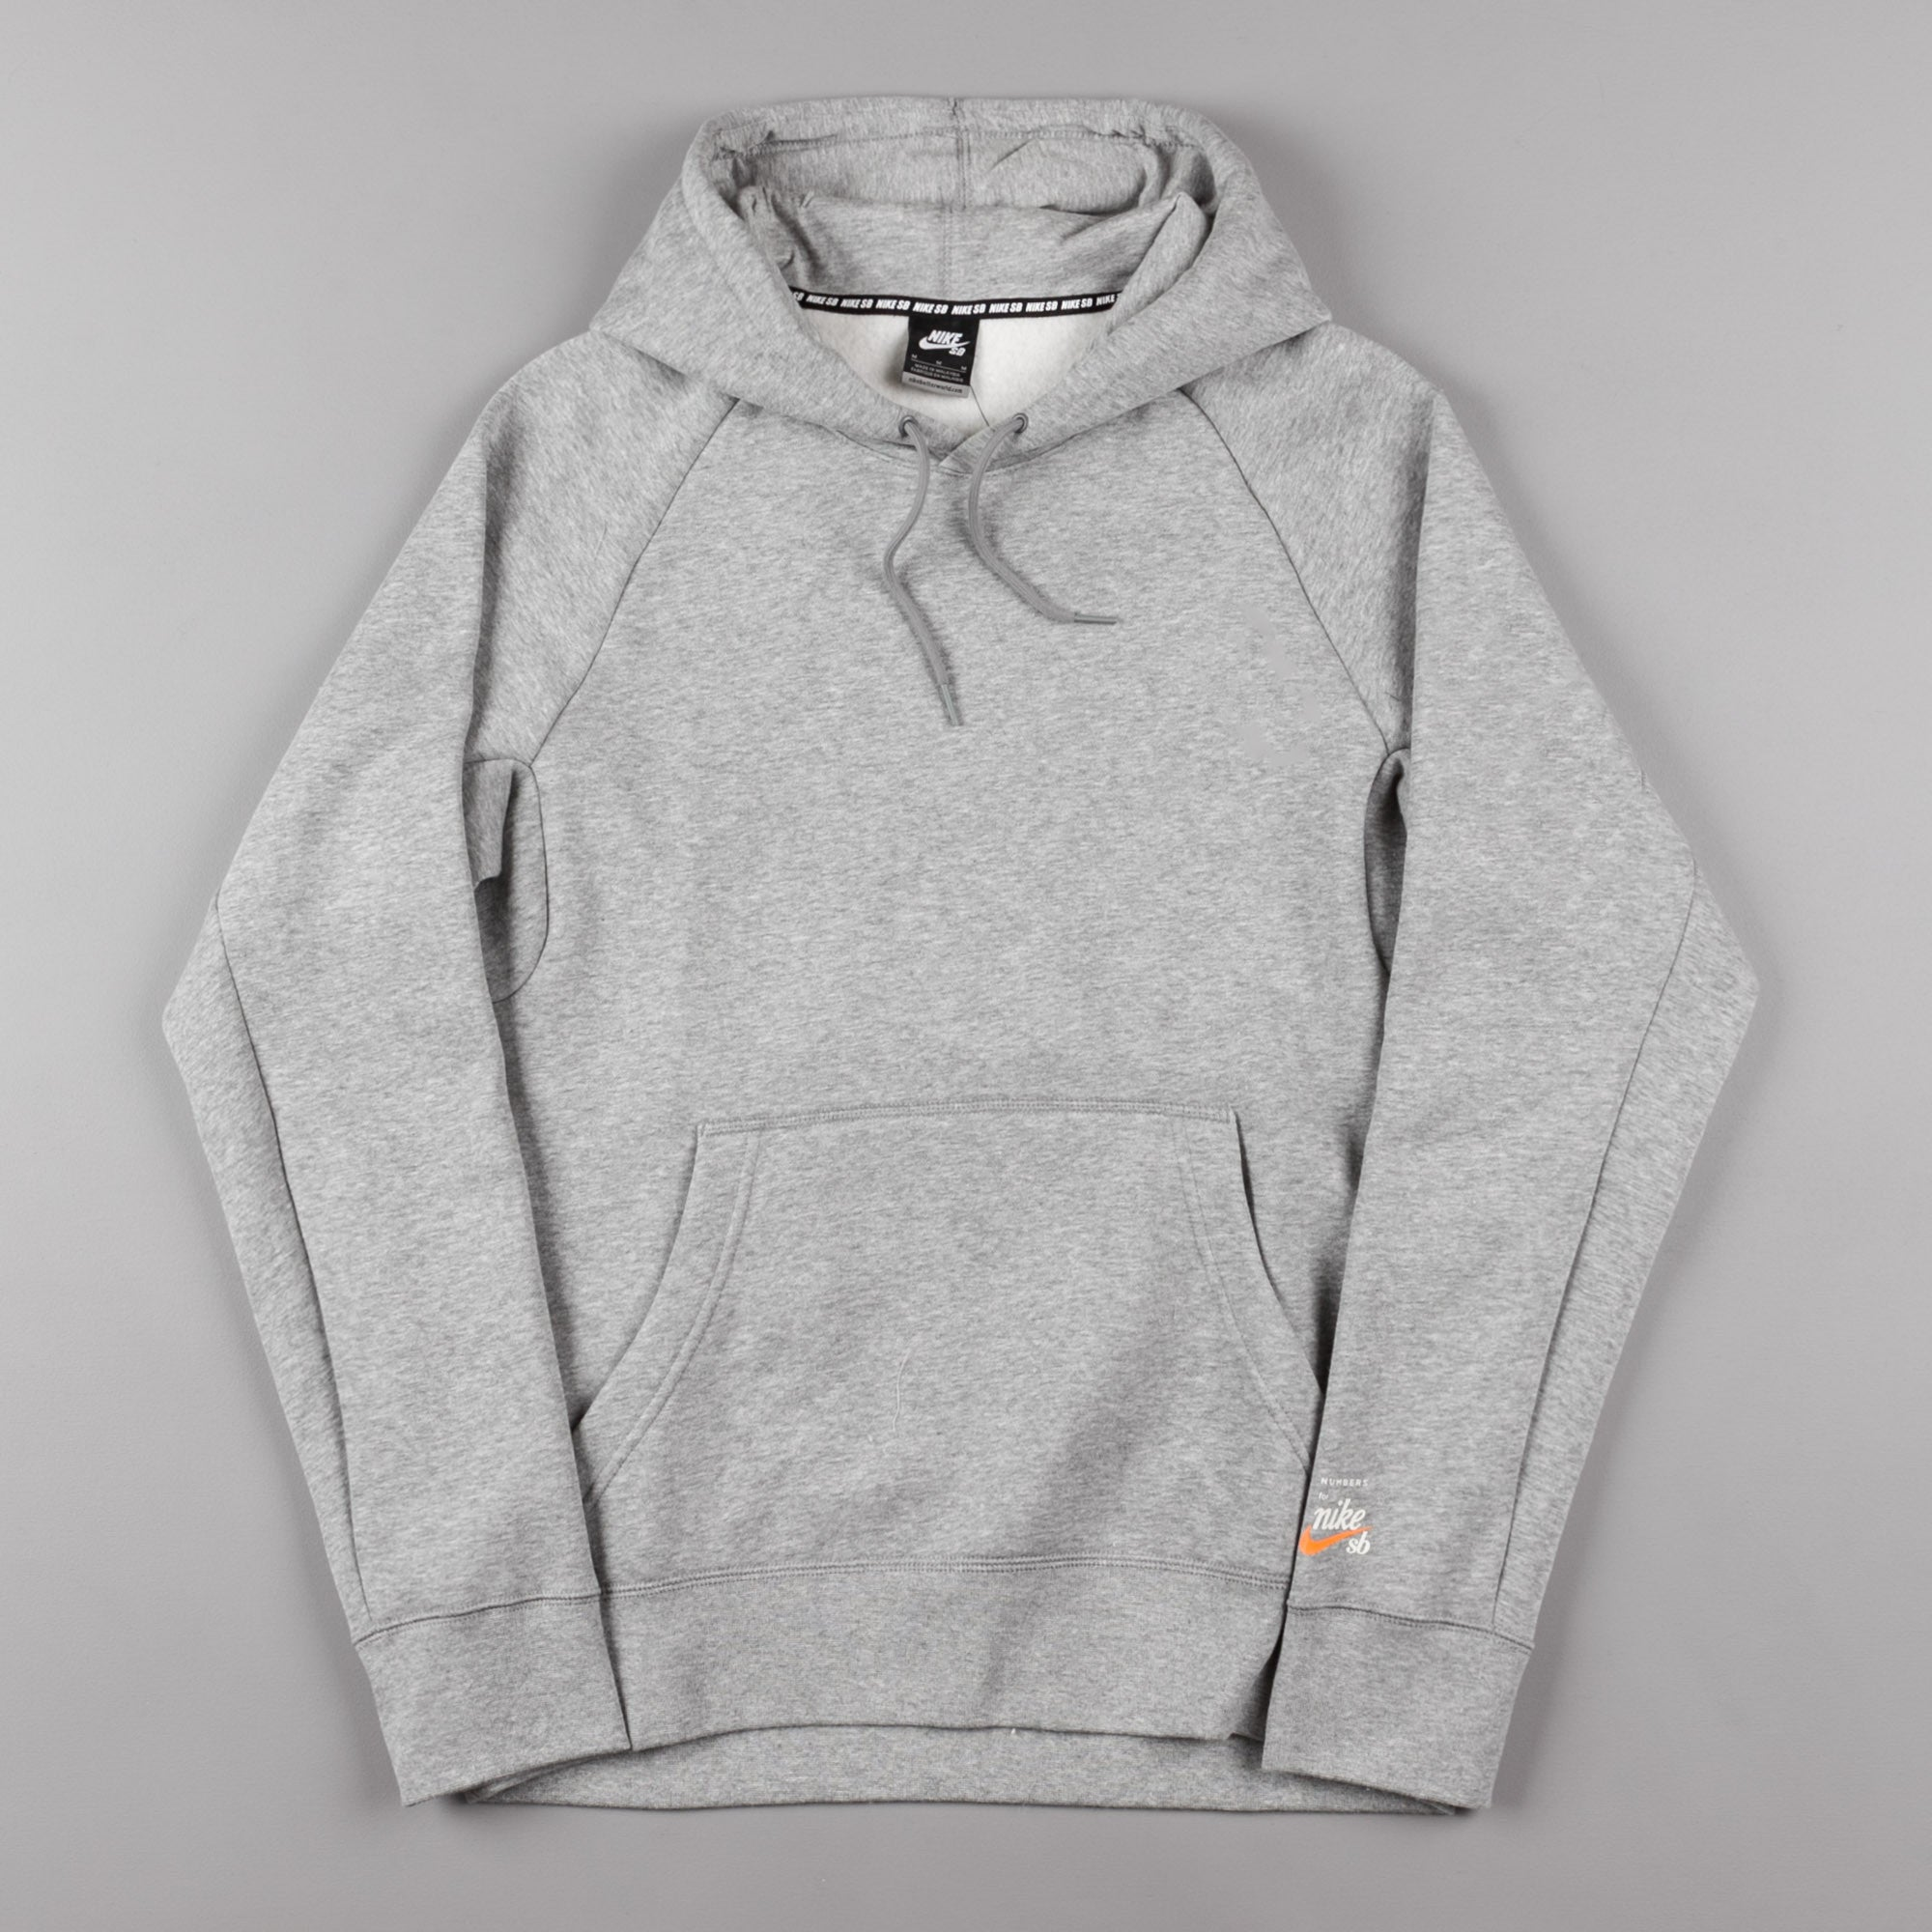 Icon X Sweatshirt Dark Nike Grey Heather Hooded Numbers Sb Vivid qtwxa5Ag